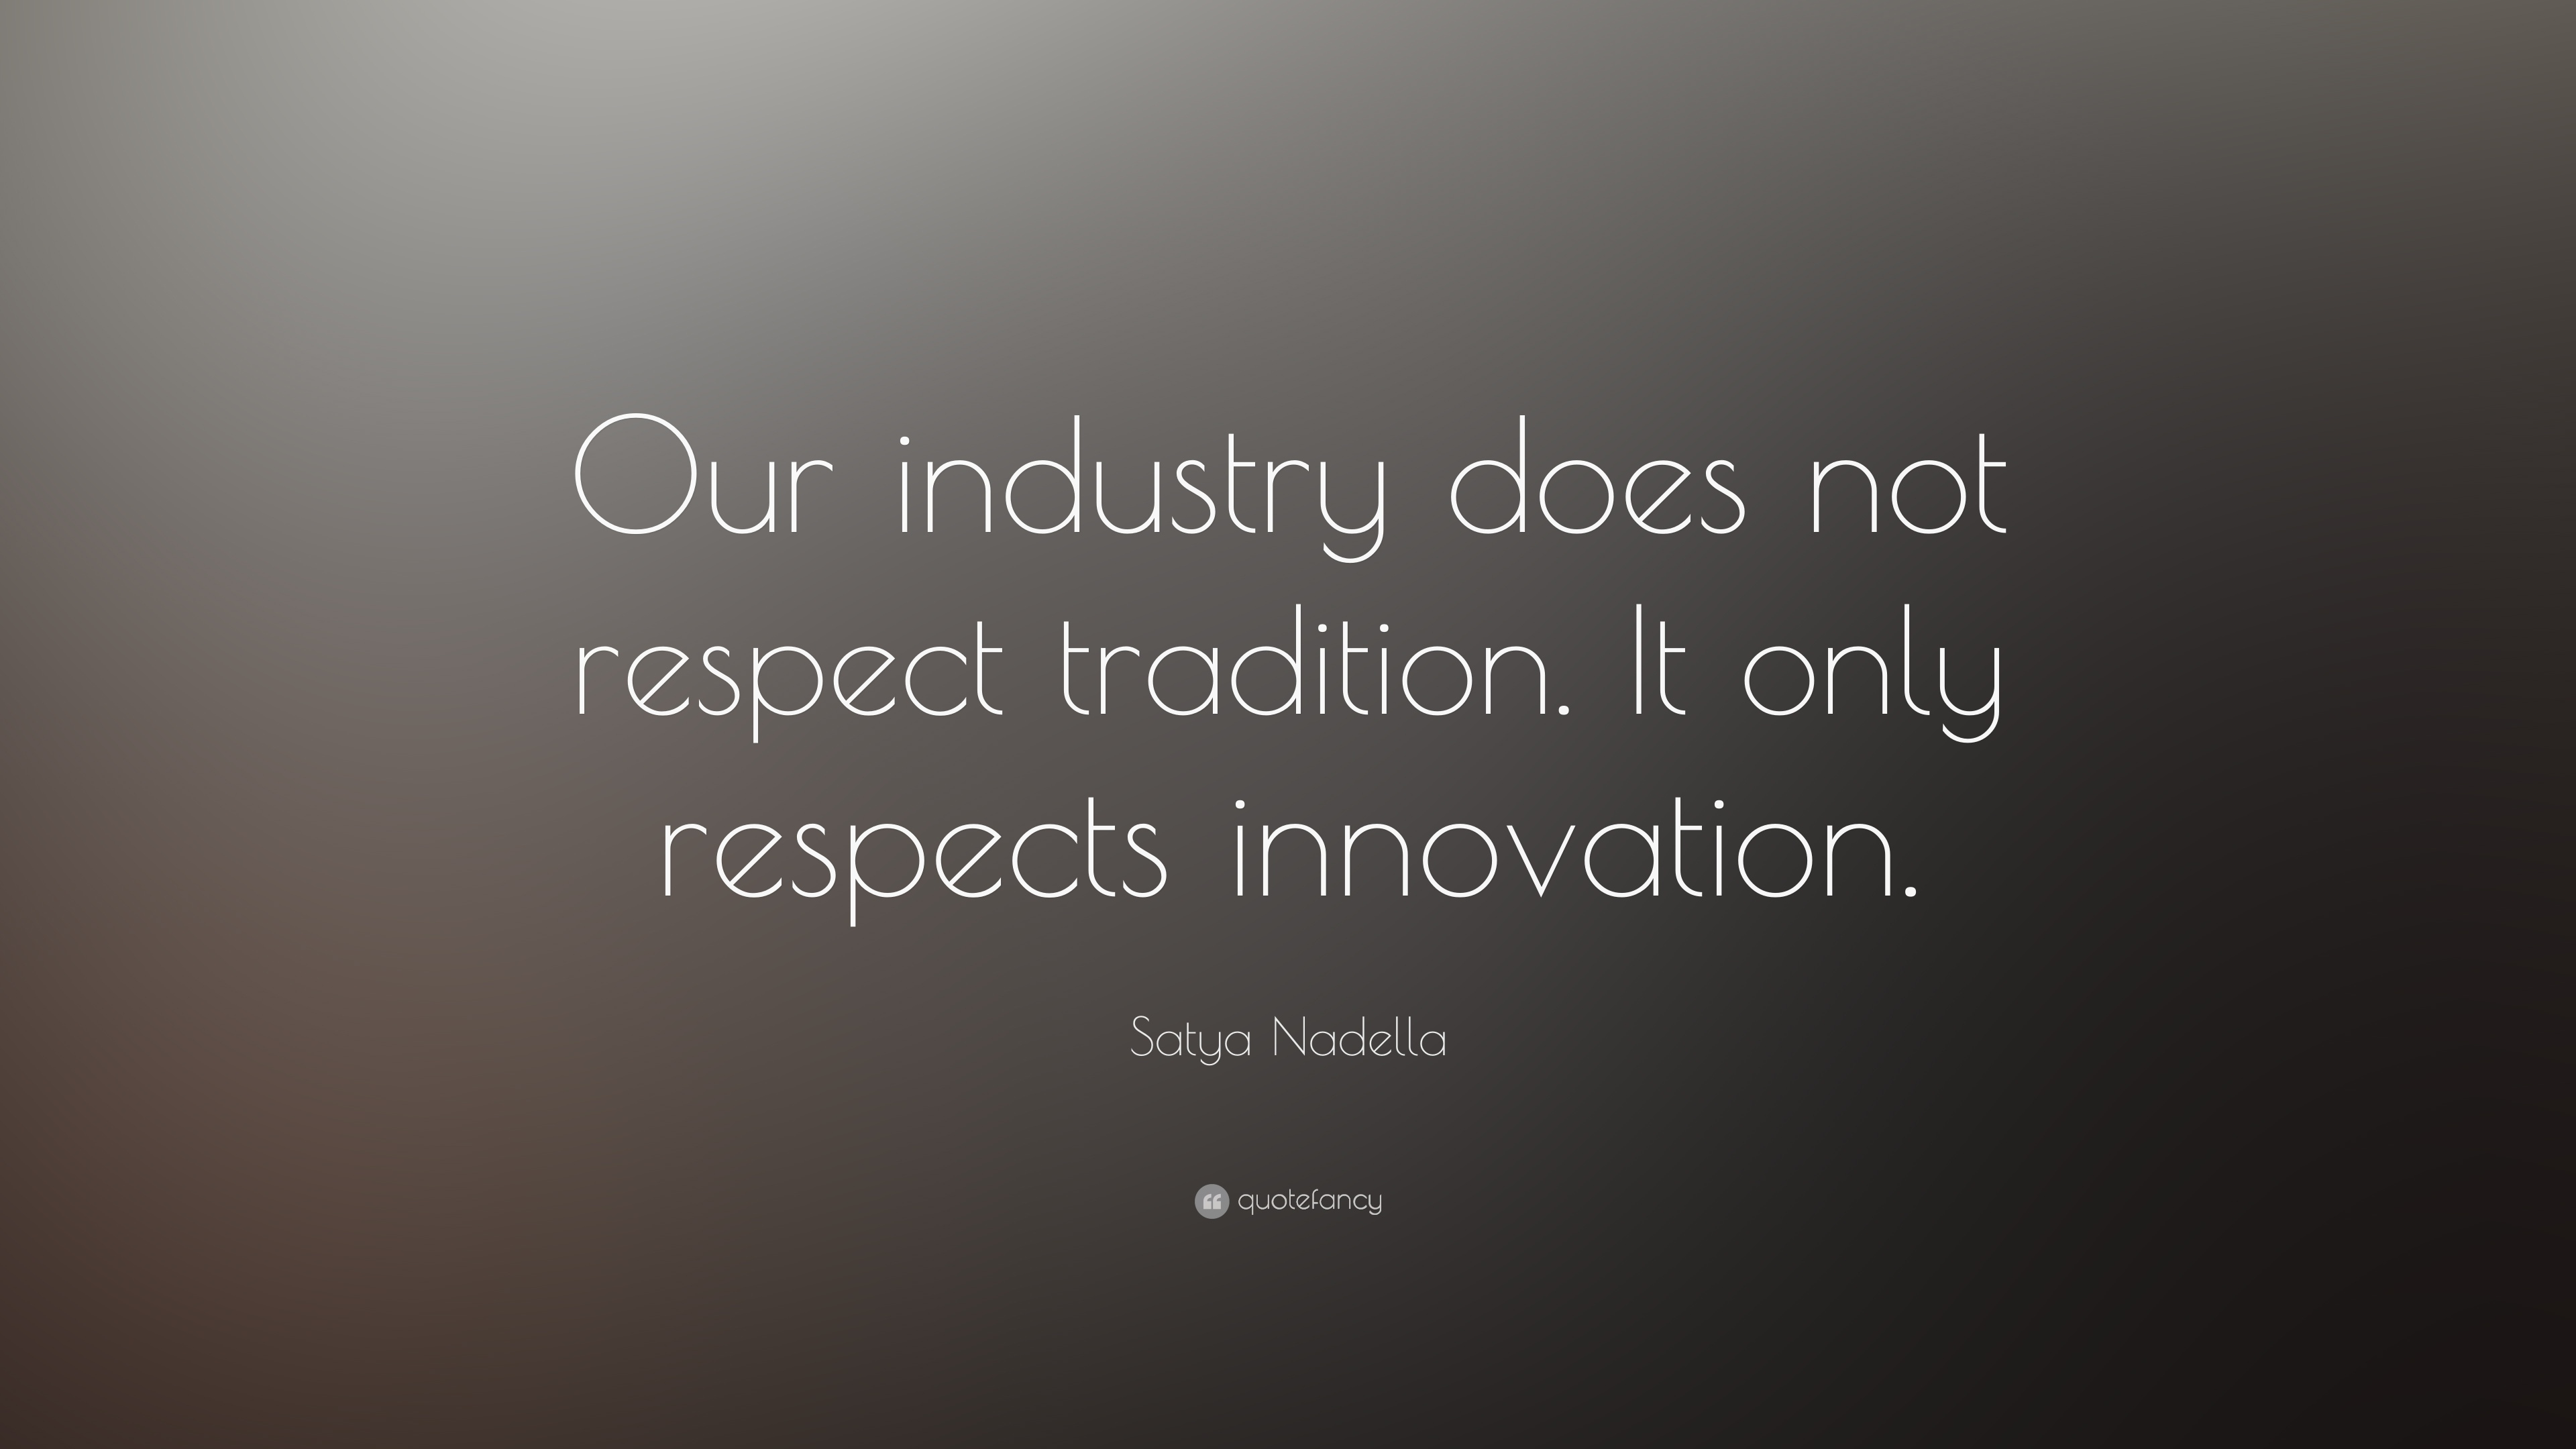 Success Quotes Hd Wallpapers 1080p Satya Nadella Quote Our Industry Does Not Respect